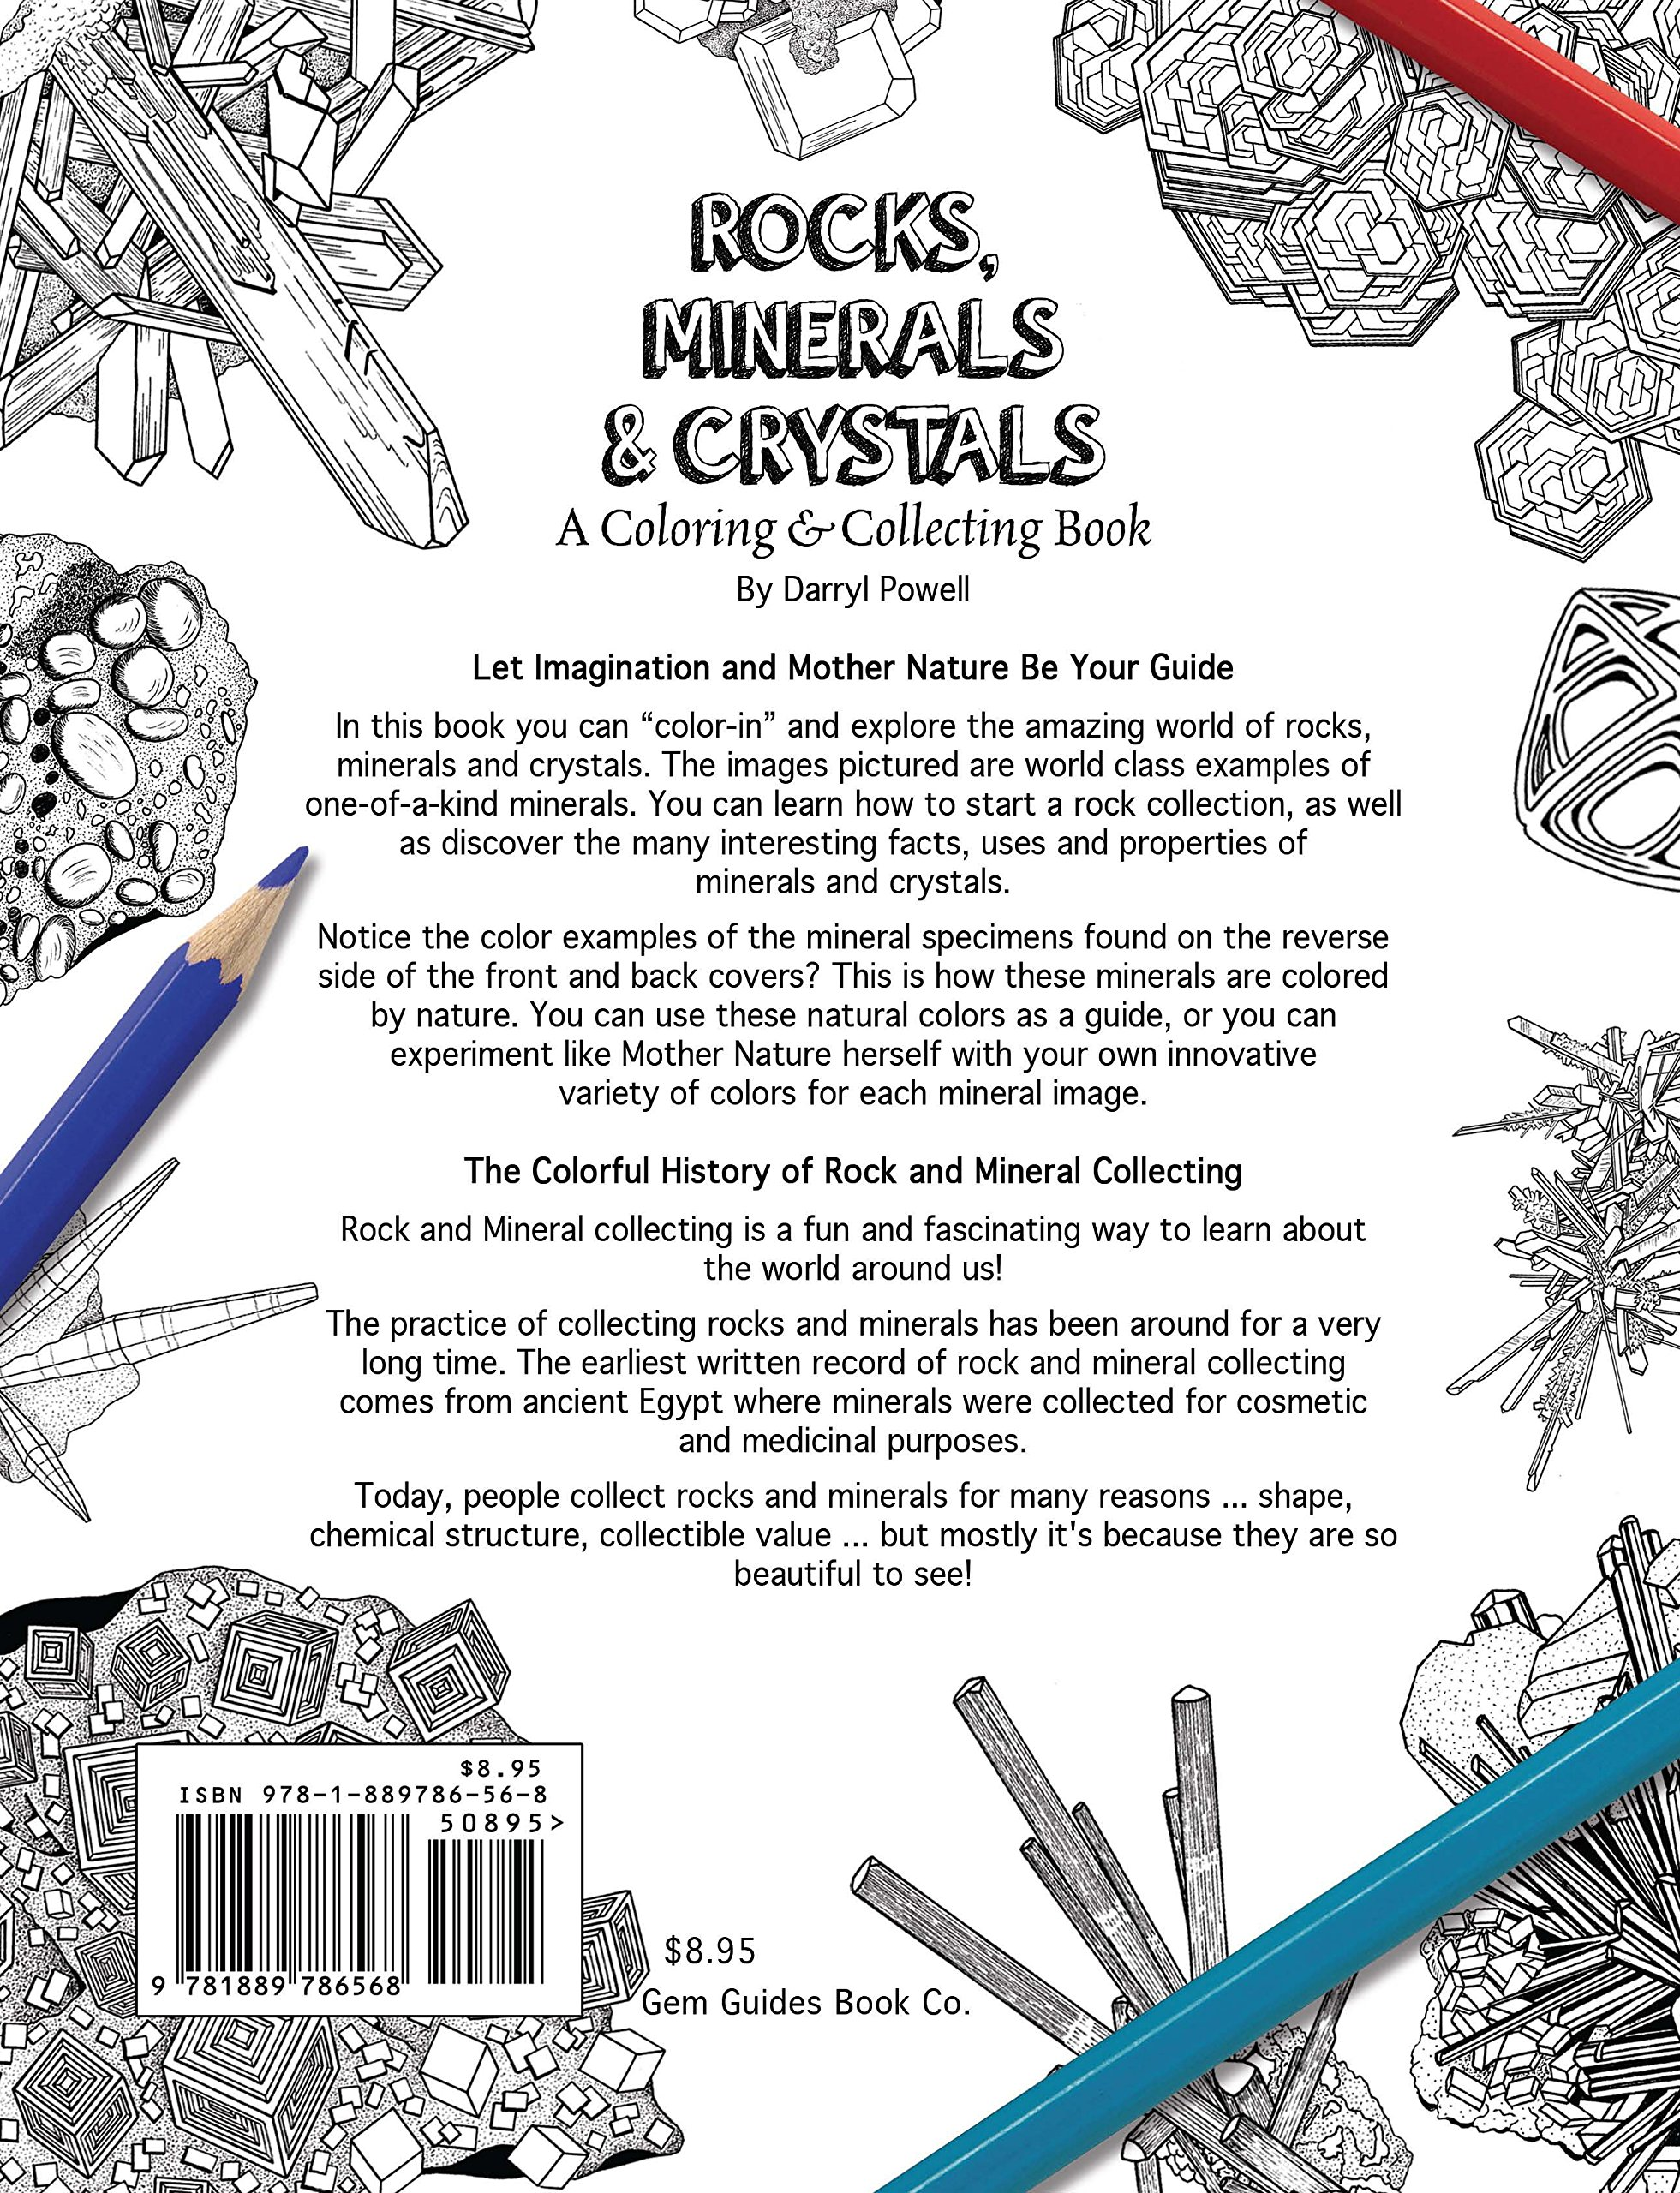 rocks minerals crystals a coloring collecting book darryl powell 9781889786568 amazoncom books